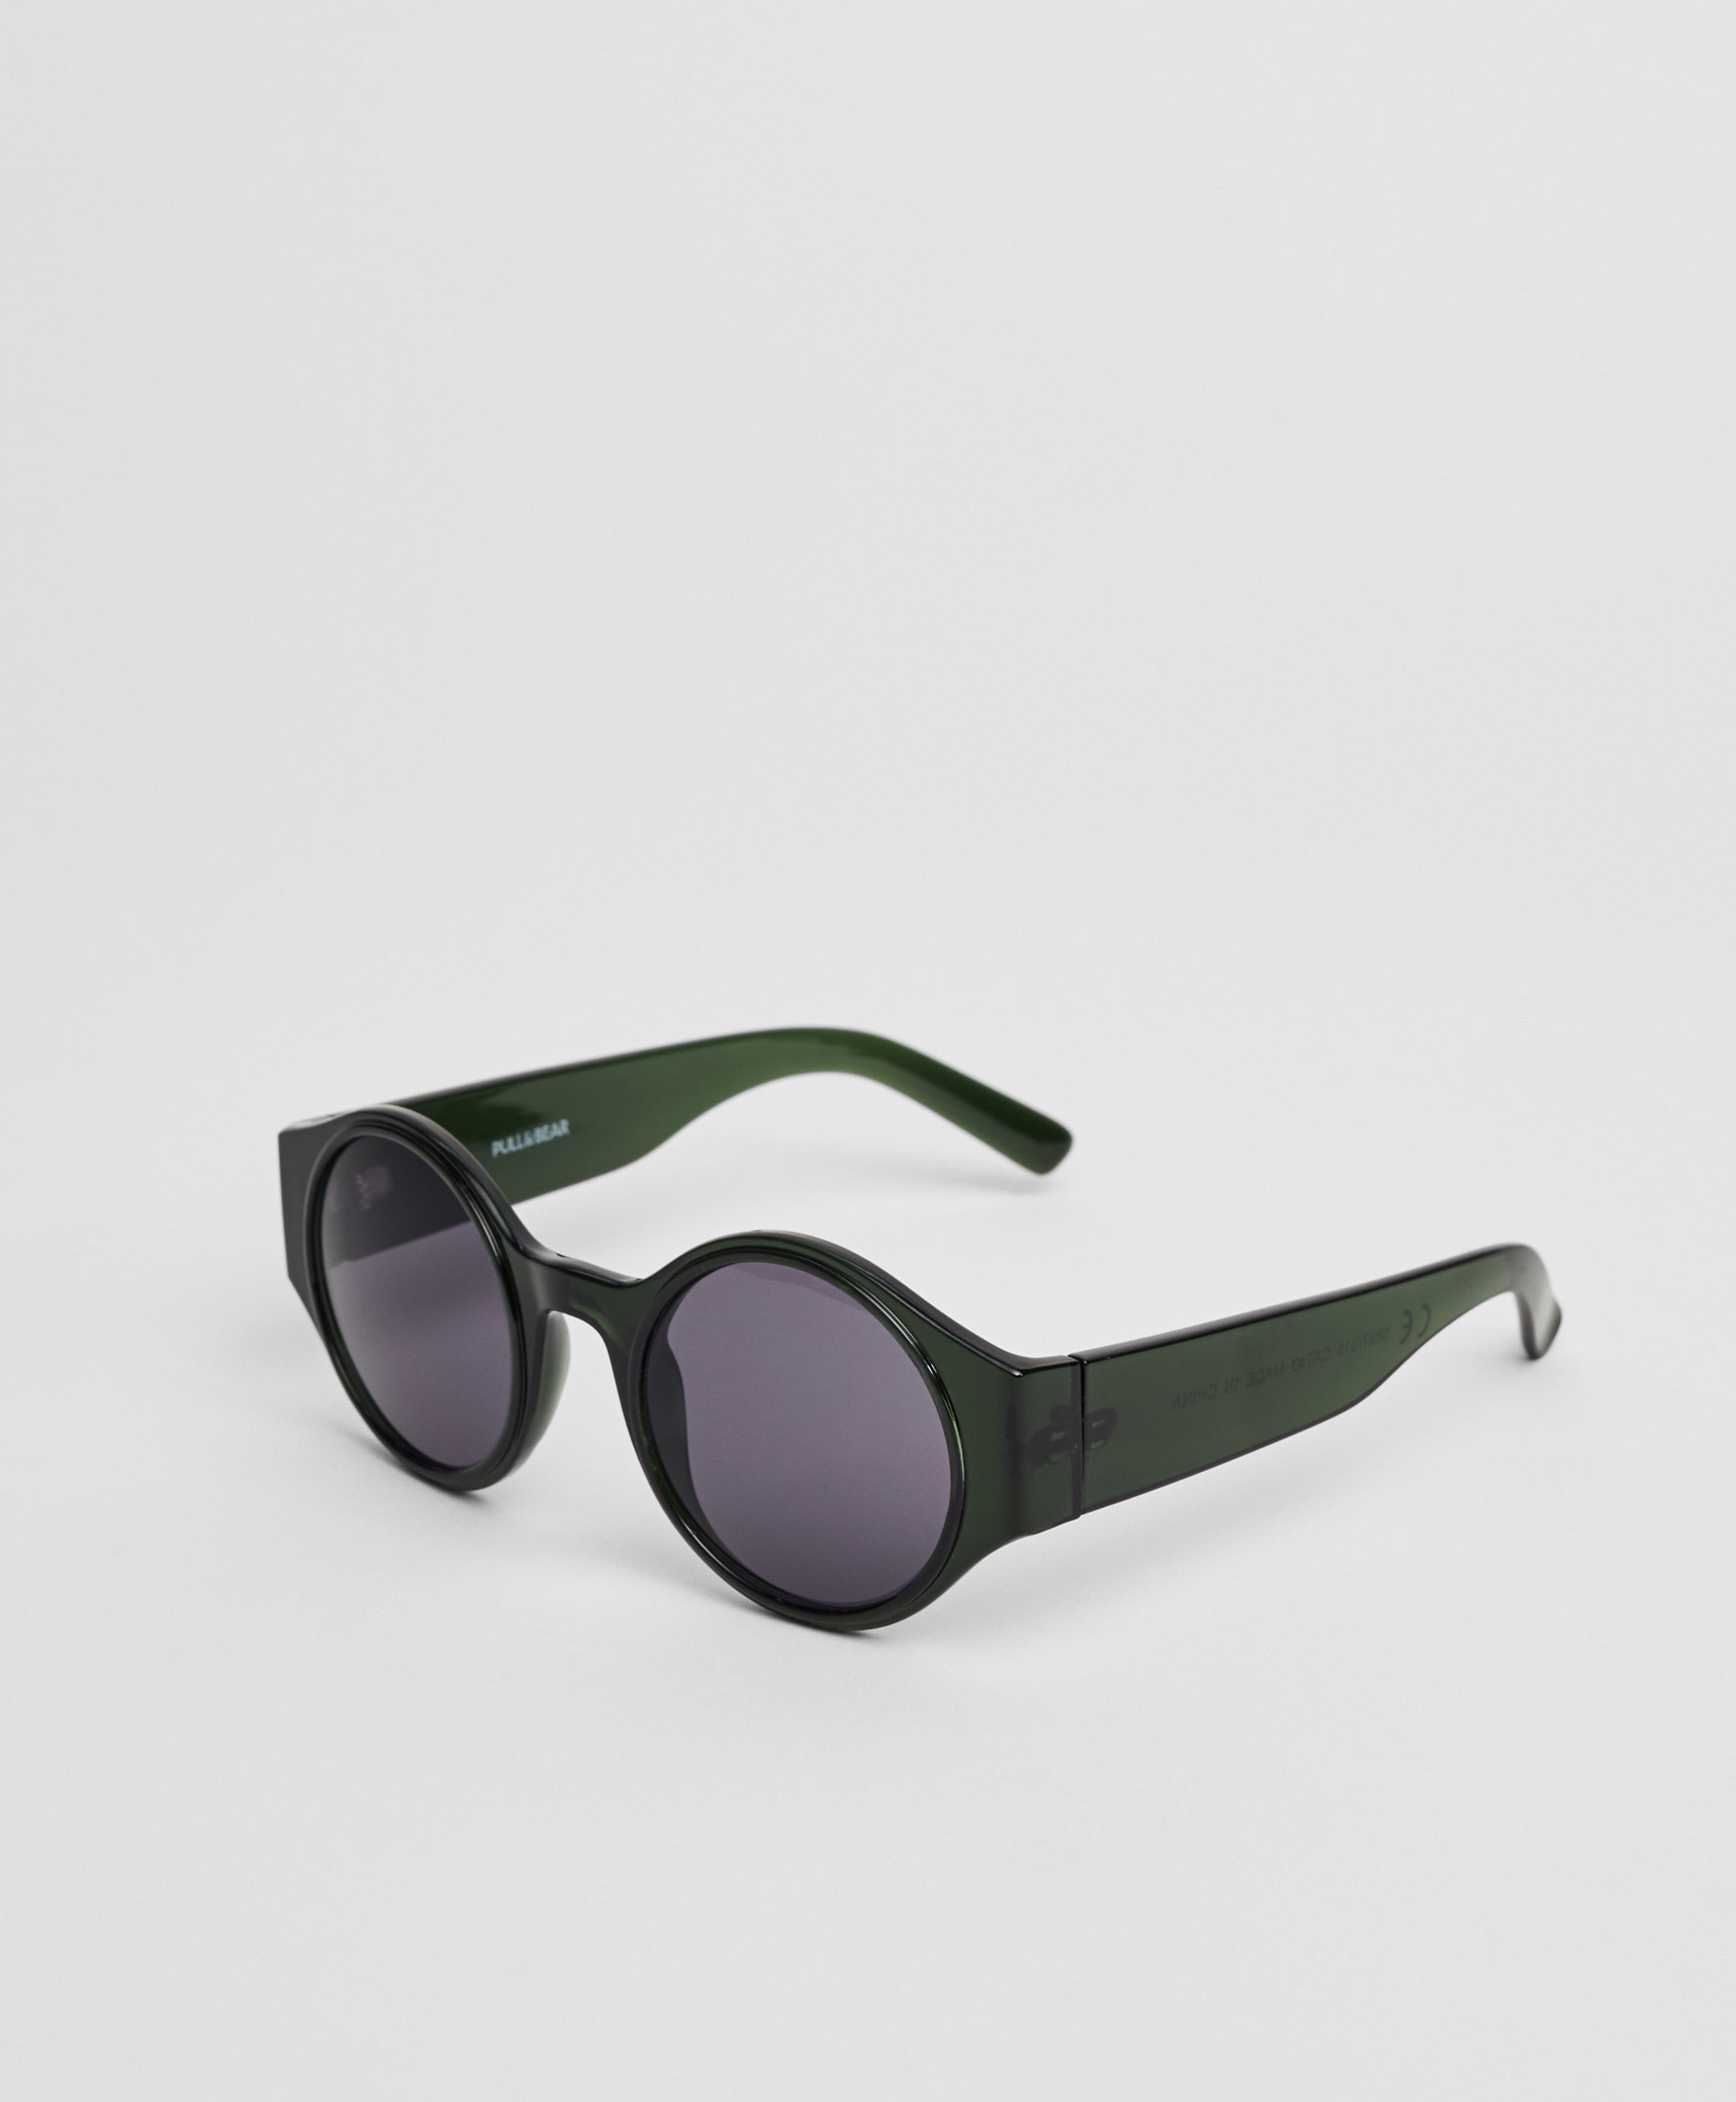 Round resin sunglasses with wide arms